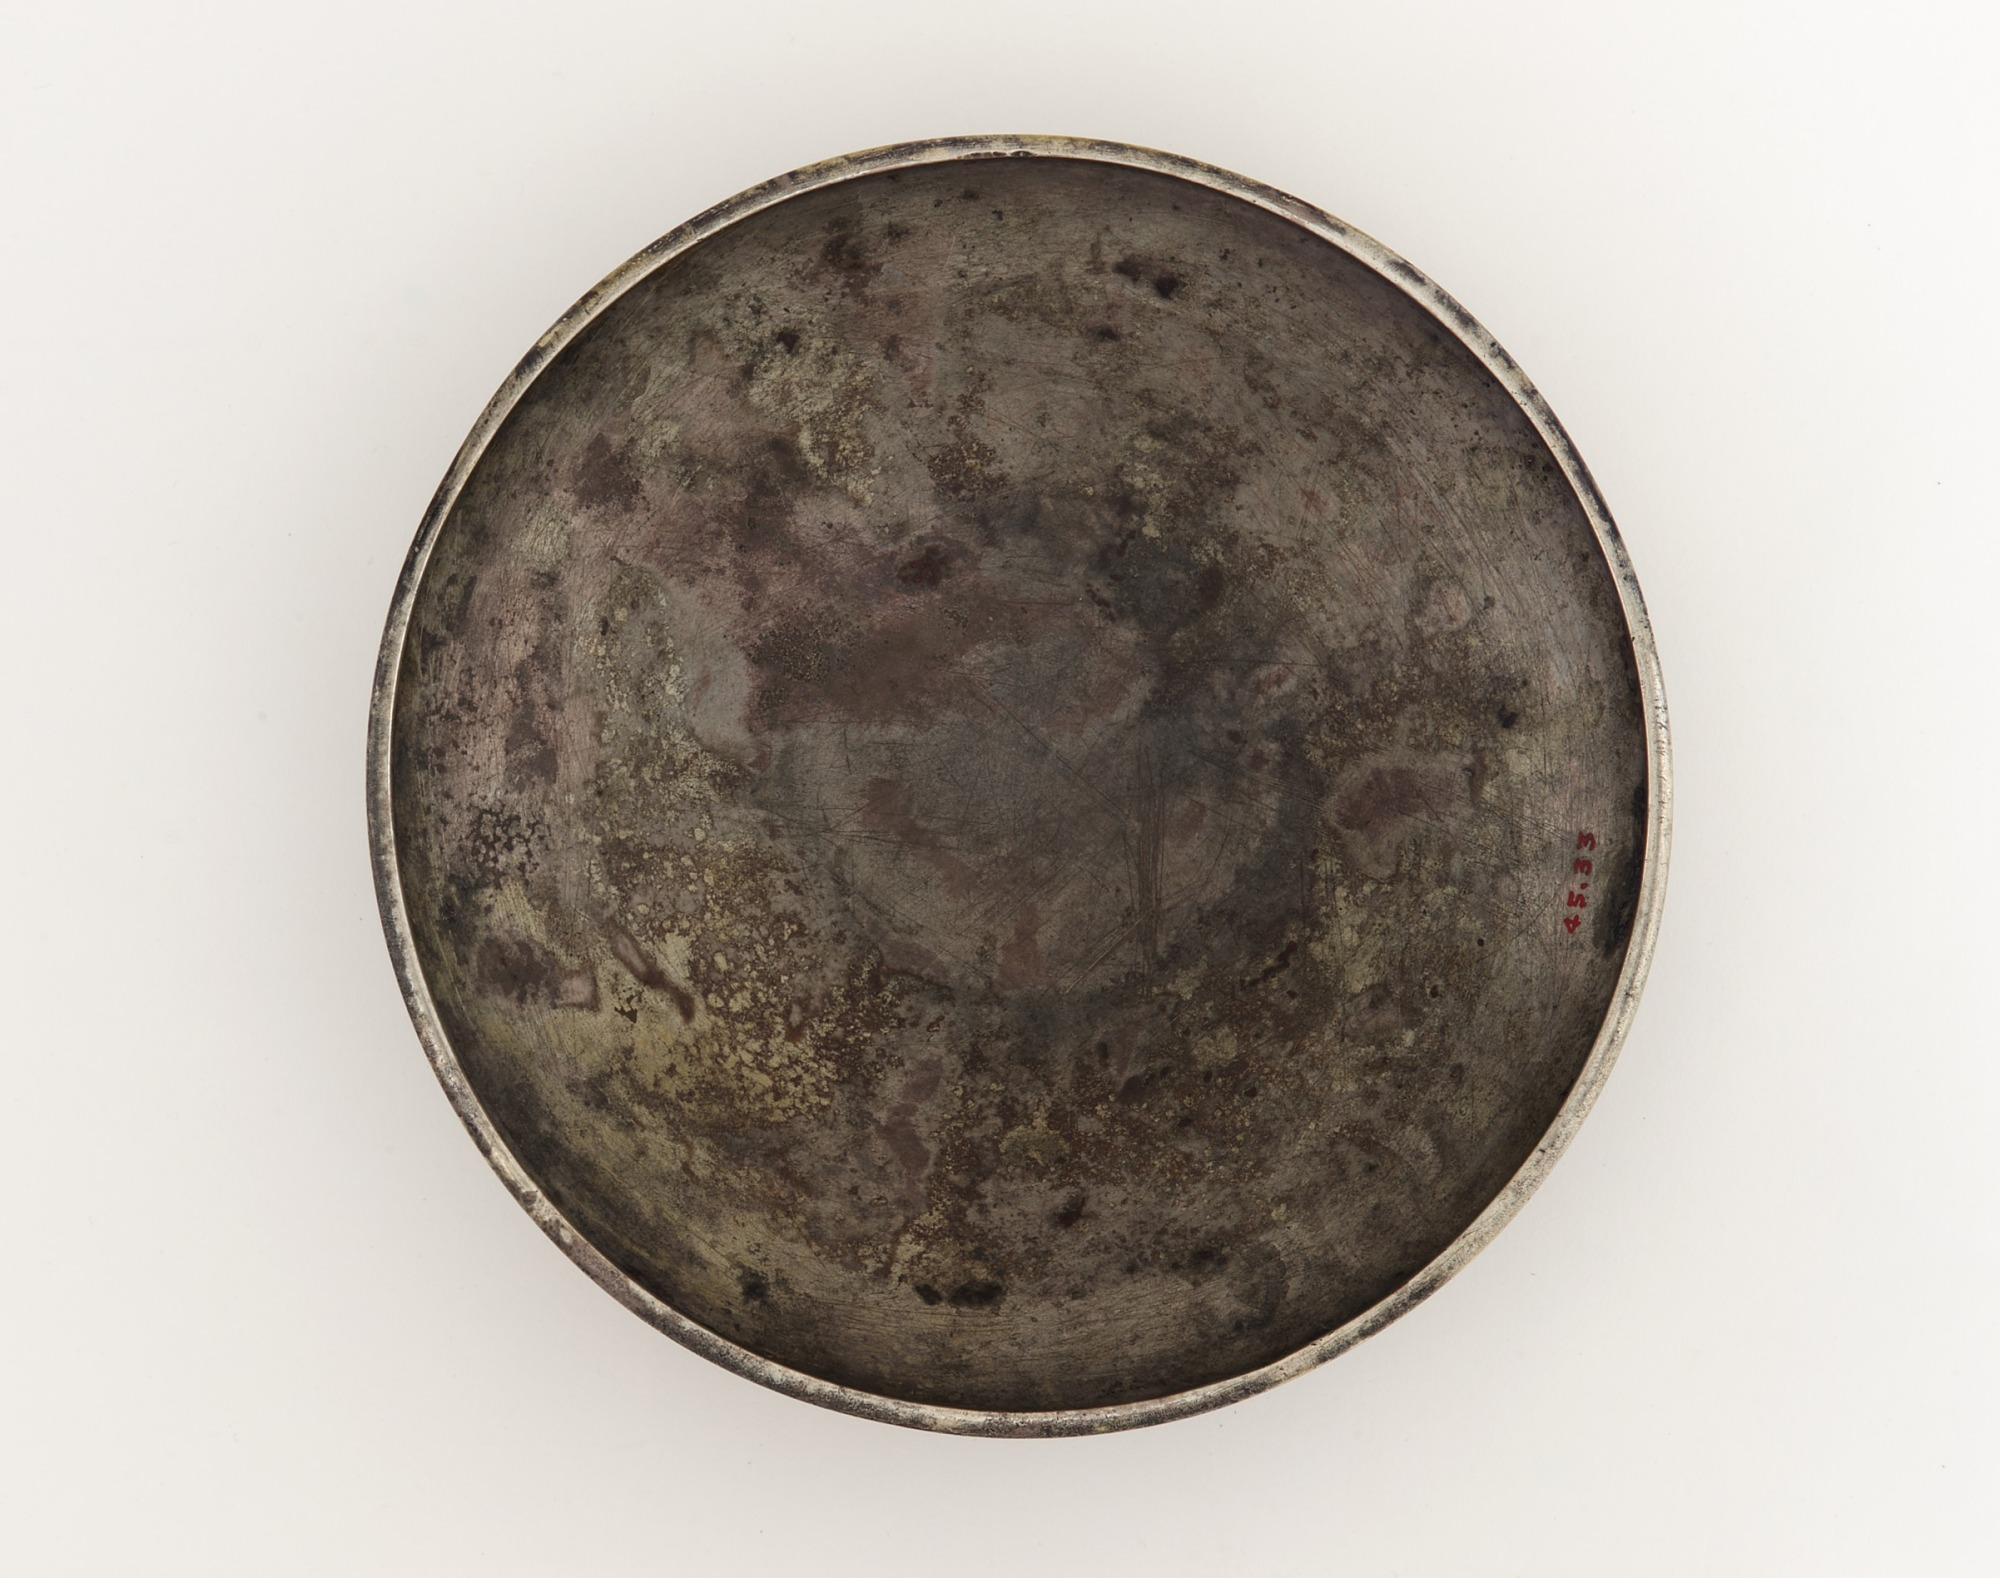 base: Shallow bowl or decorative attachment